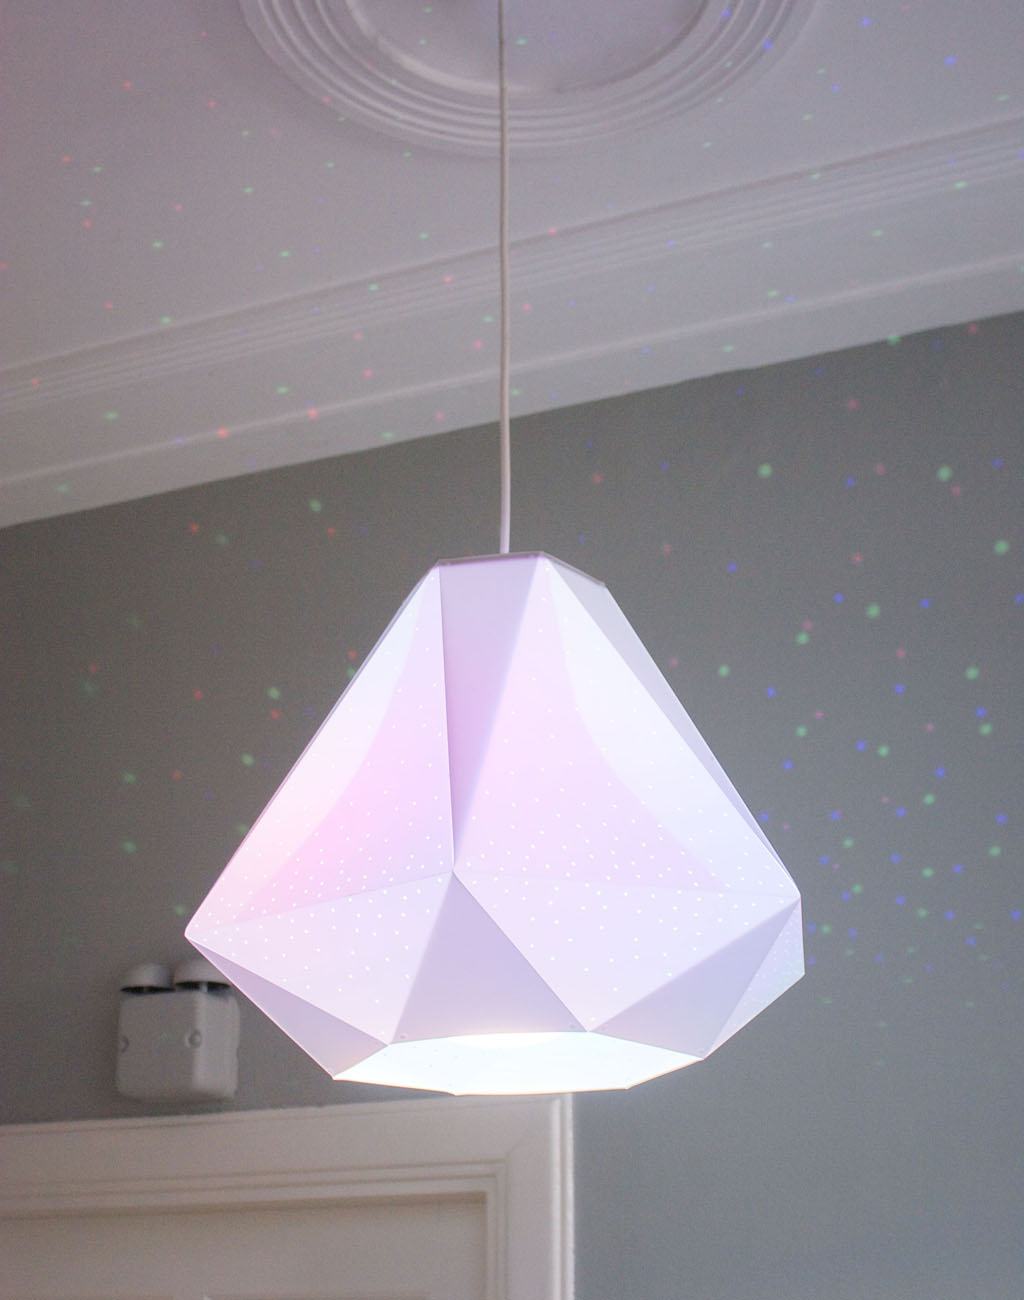 CMYK Diamond - <p>The faceted Diamond shade is made of matte white polypropylene covered in tiny pin-pricks to scatter coluored dots of light onto surrounding surfaces. The light sparkles through the little holes like a real diamond.</p>